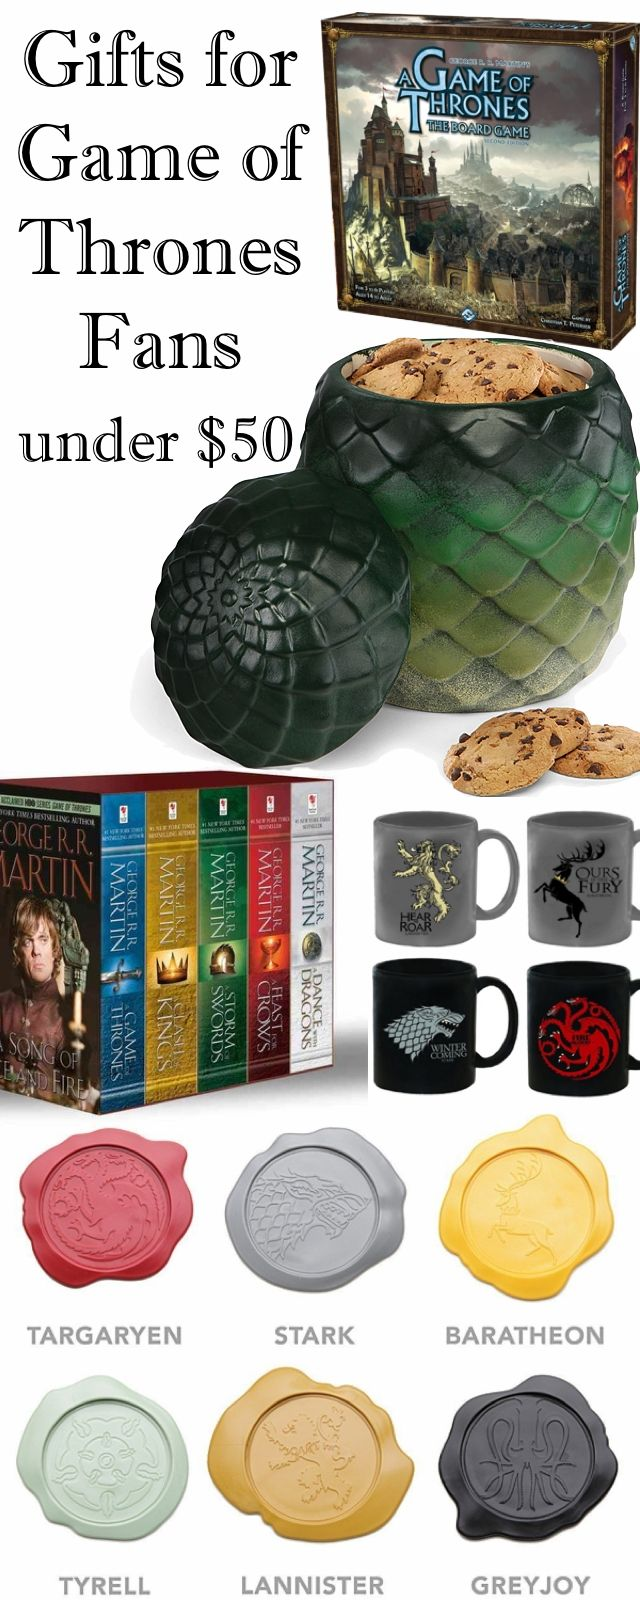 Game of Thrones Gifts Under $50 Gifts for the brother